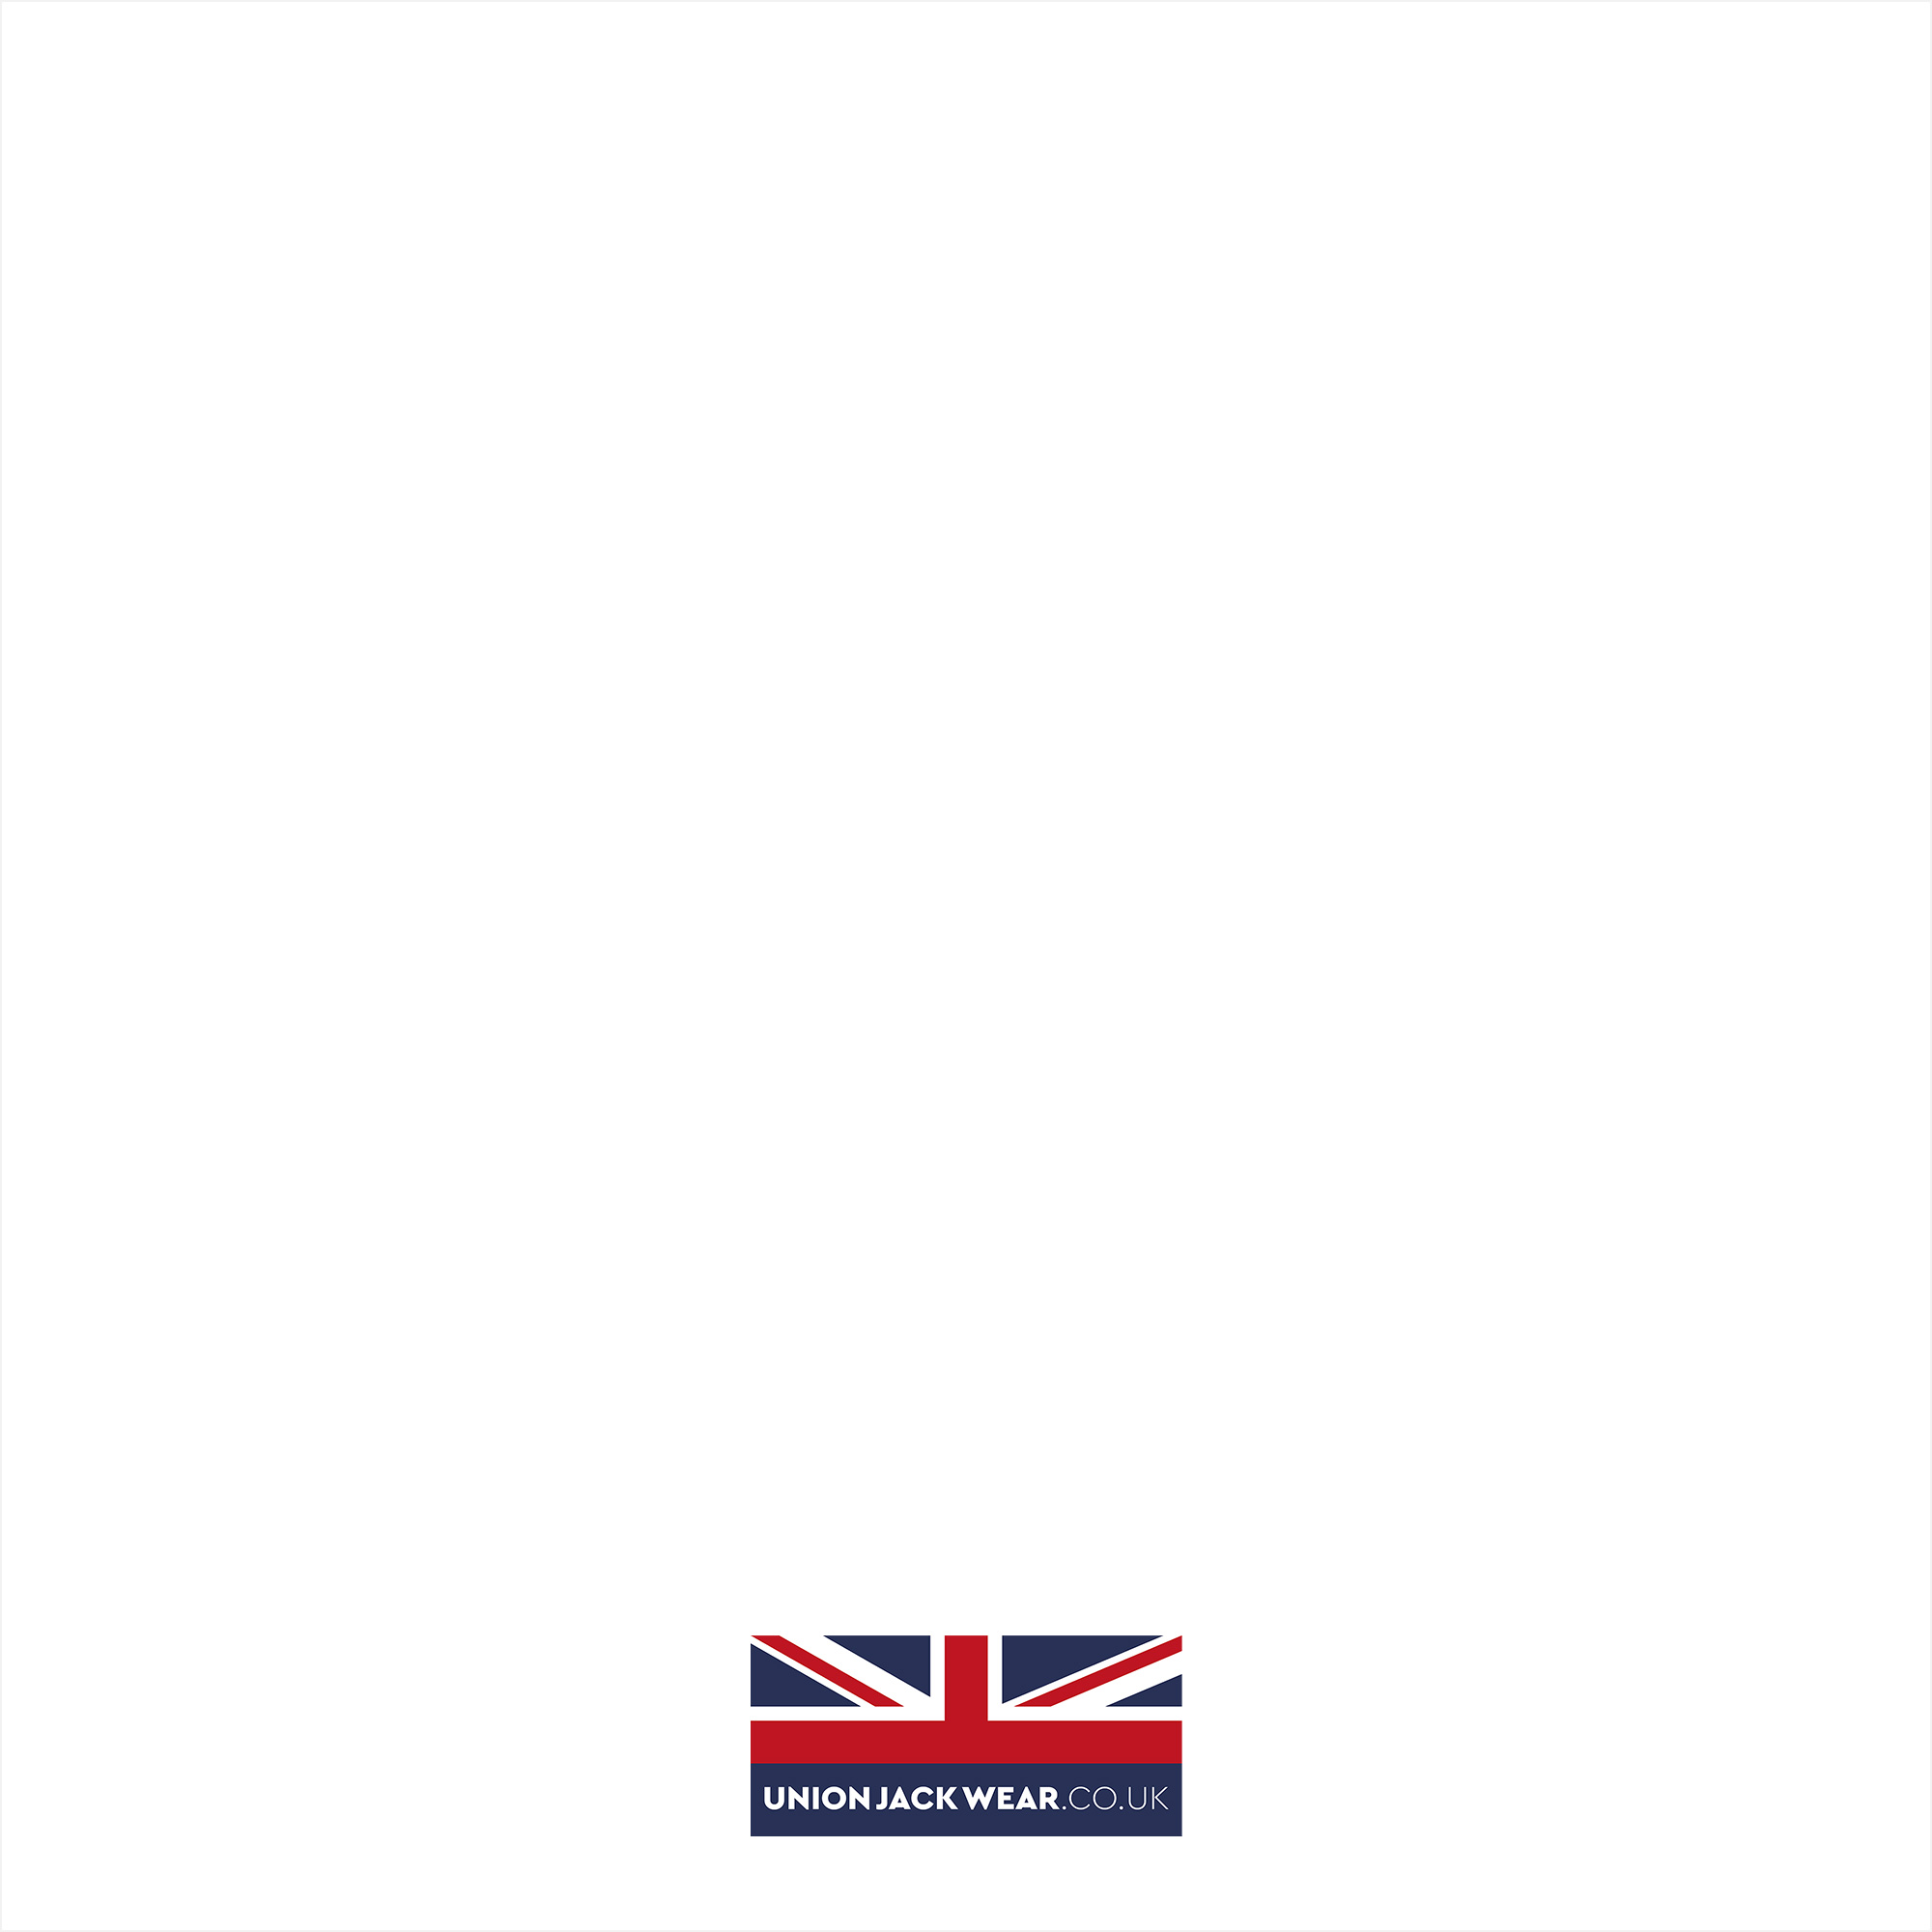 Union Jack Wear European Union Blue Stars Flag 5' x 3'